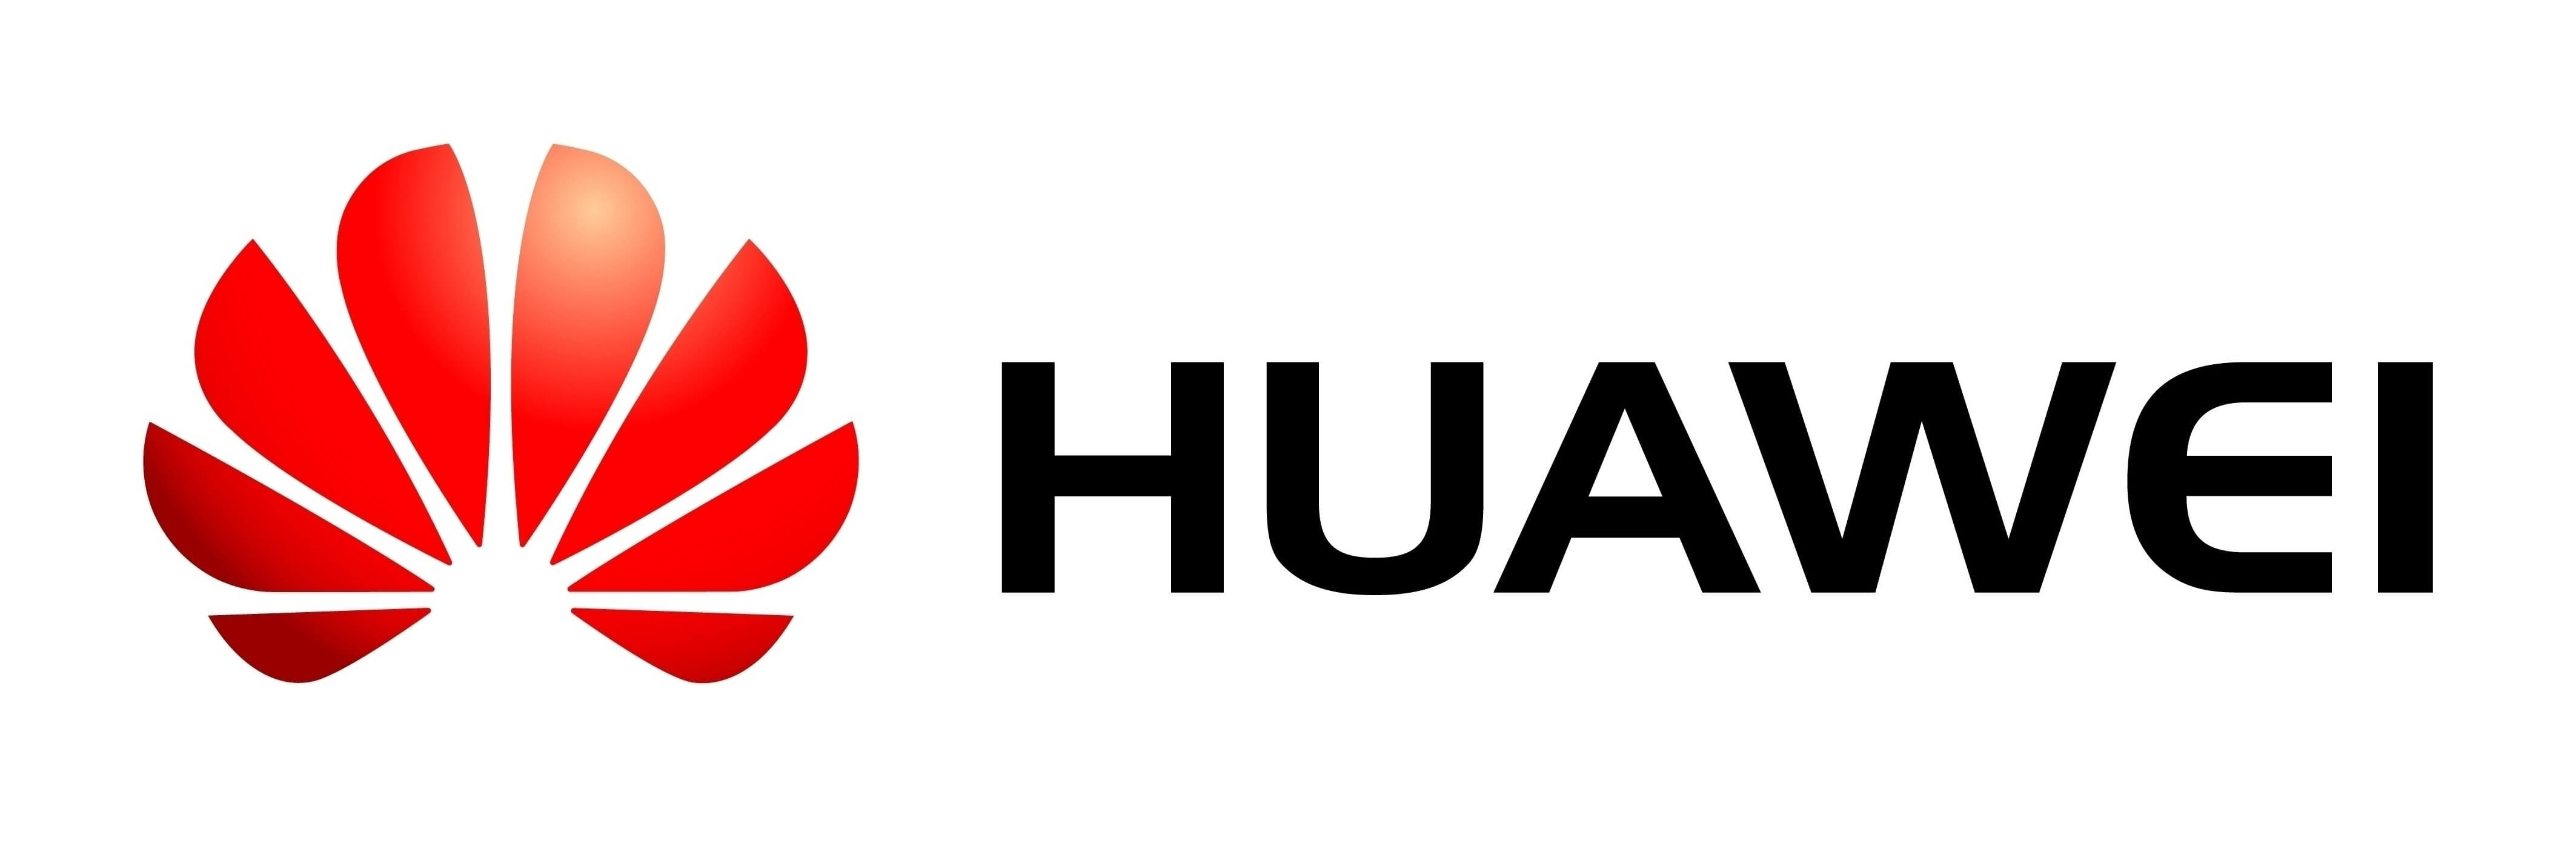 huawei logo black friday